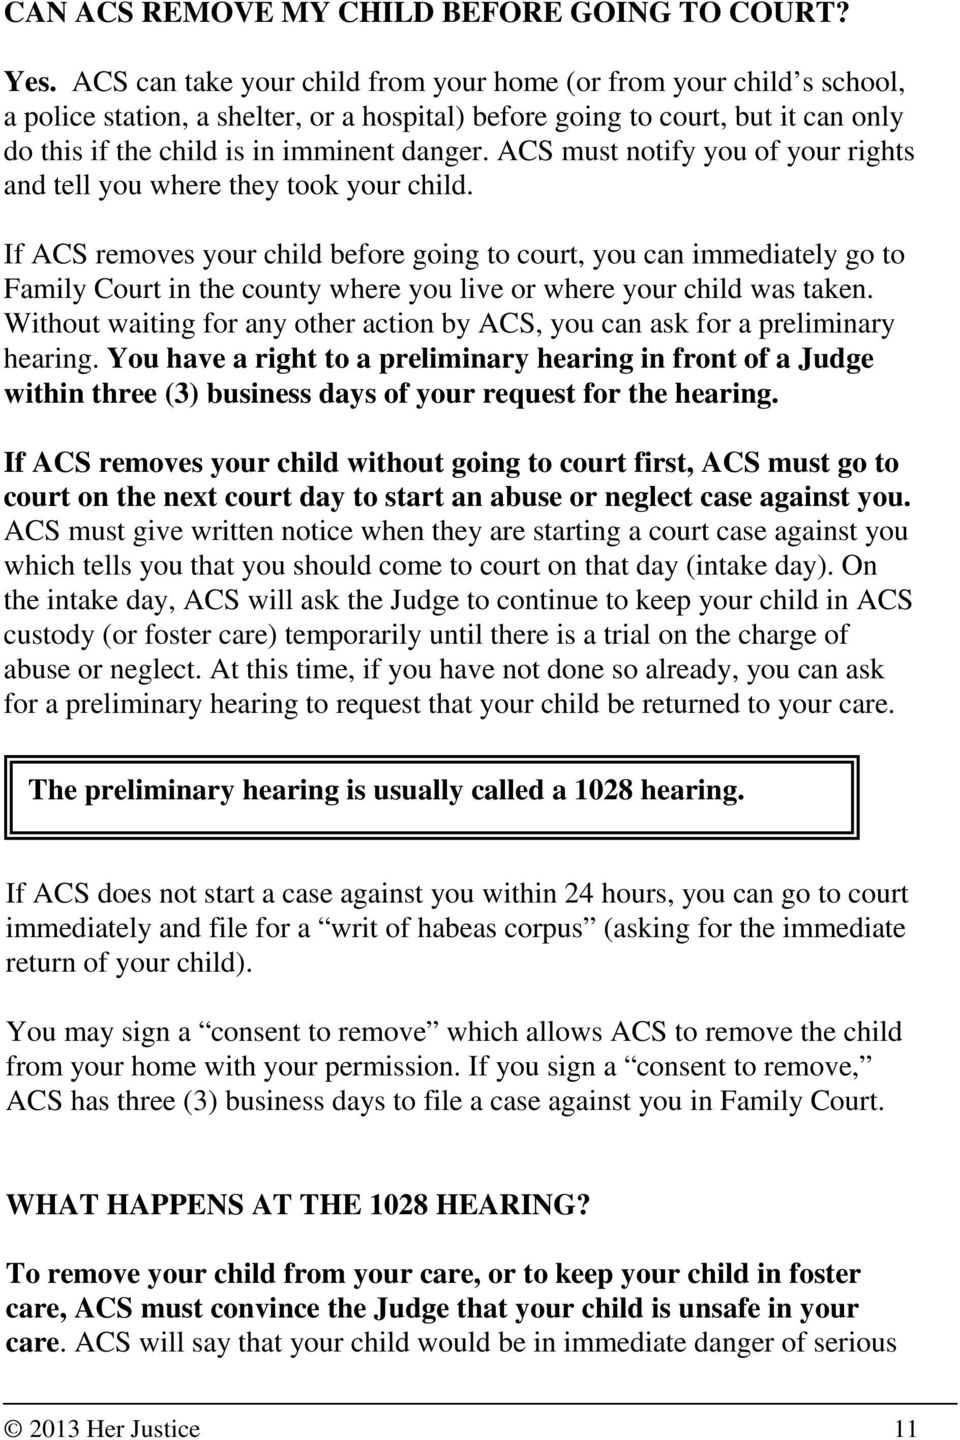 ACS must notify you of your rights and tell you where they took your child.